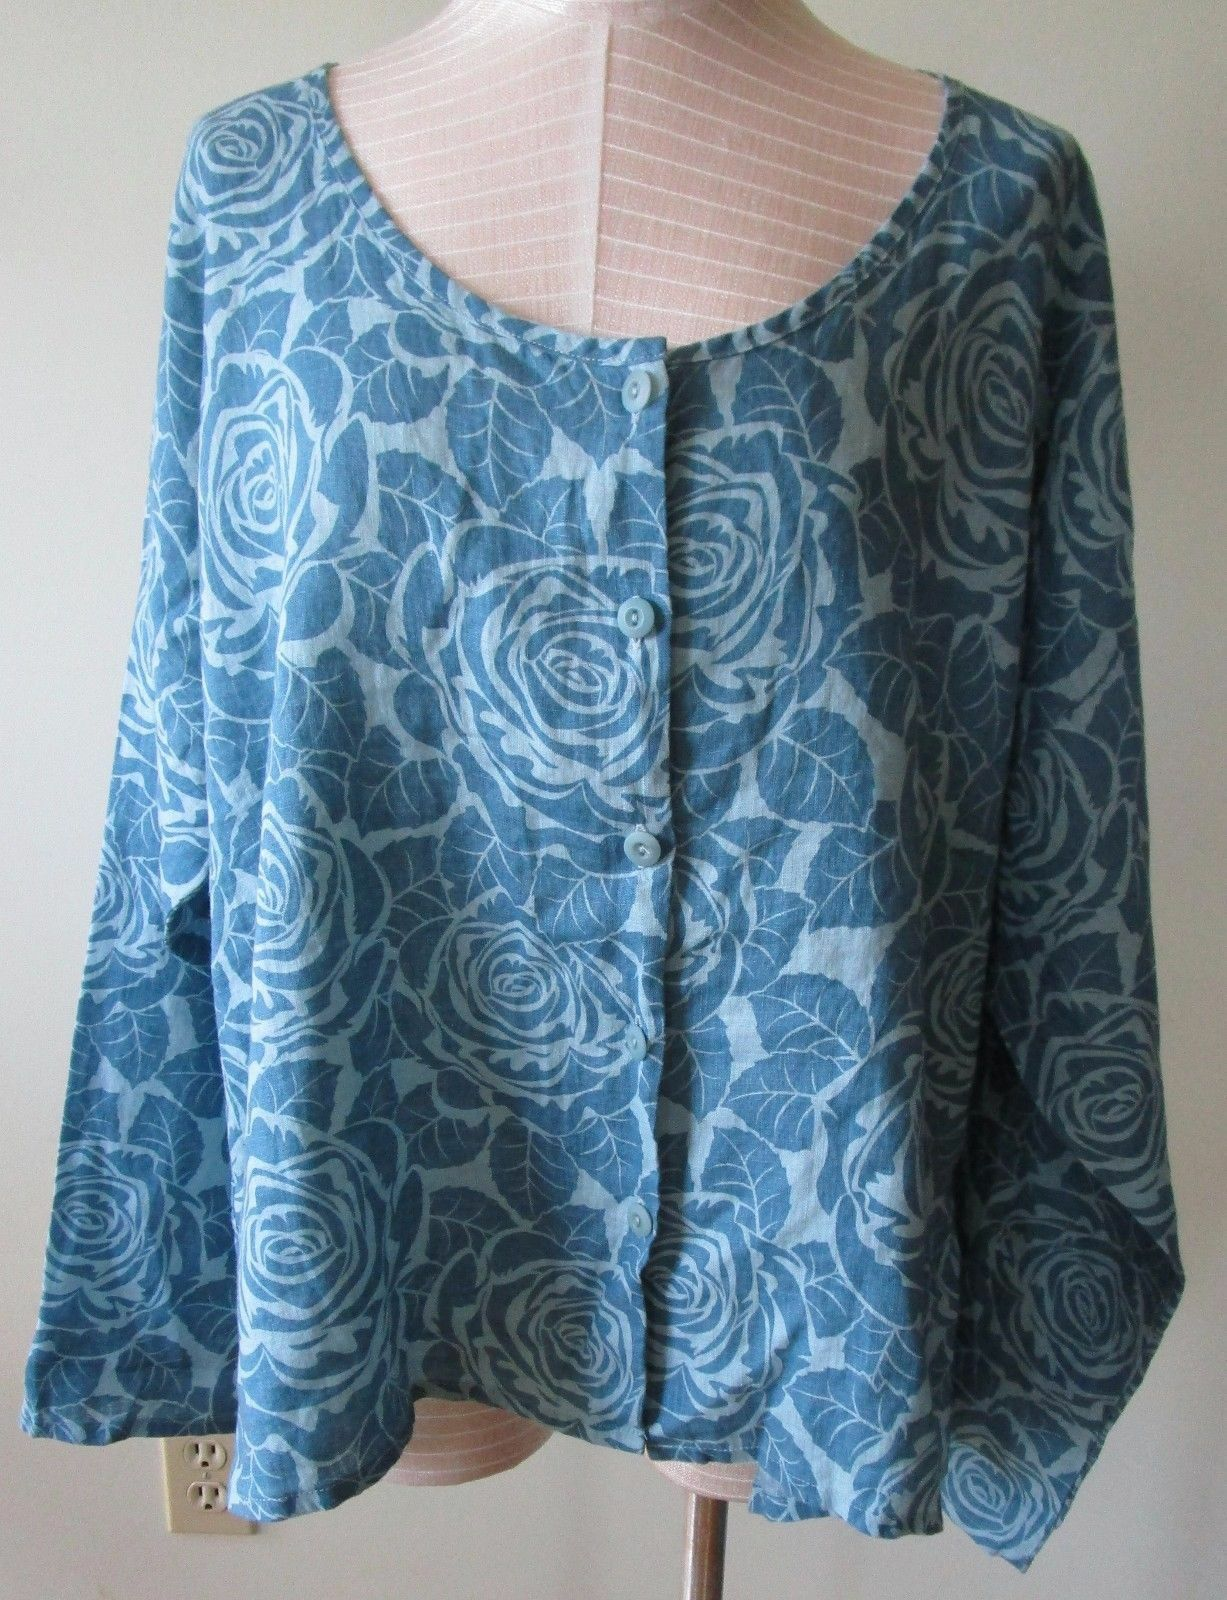 FLAX Designs    LINEN SHIRT    L     NWOT   Casual Blouse  BlauSTONE  CLEARANCE